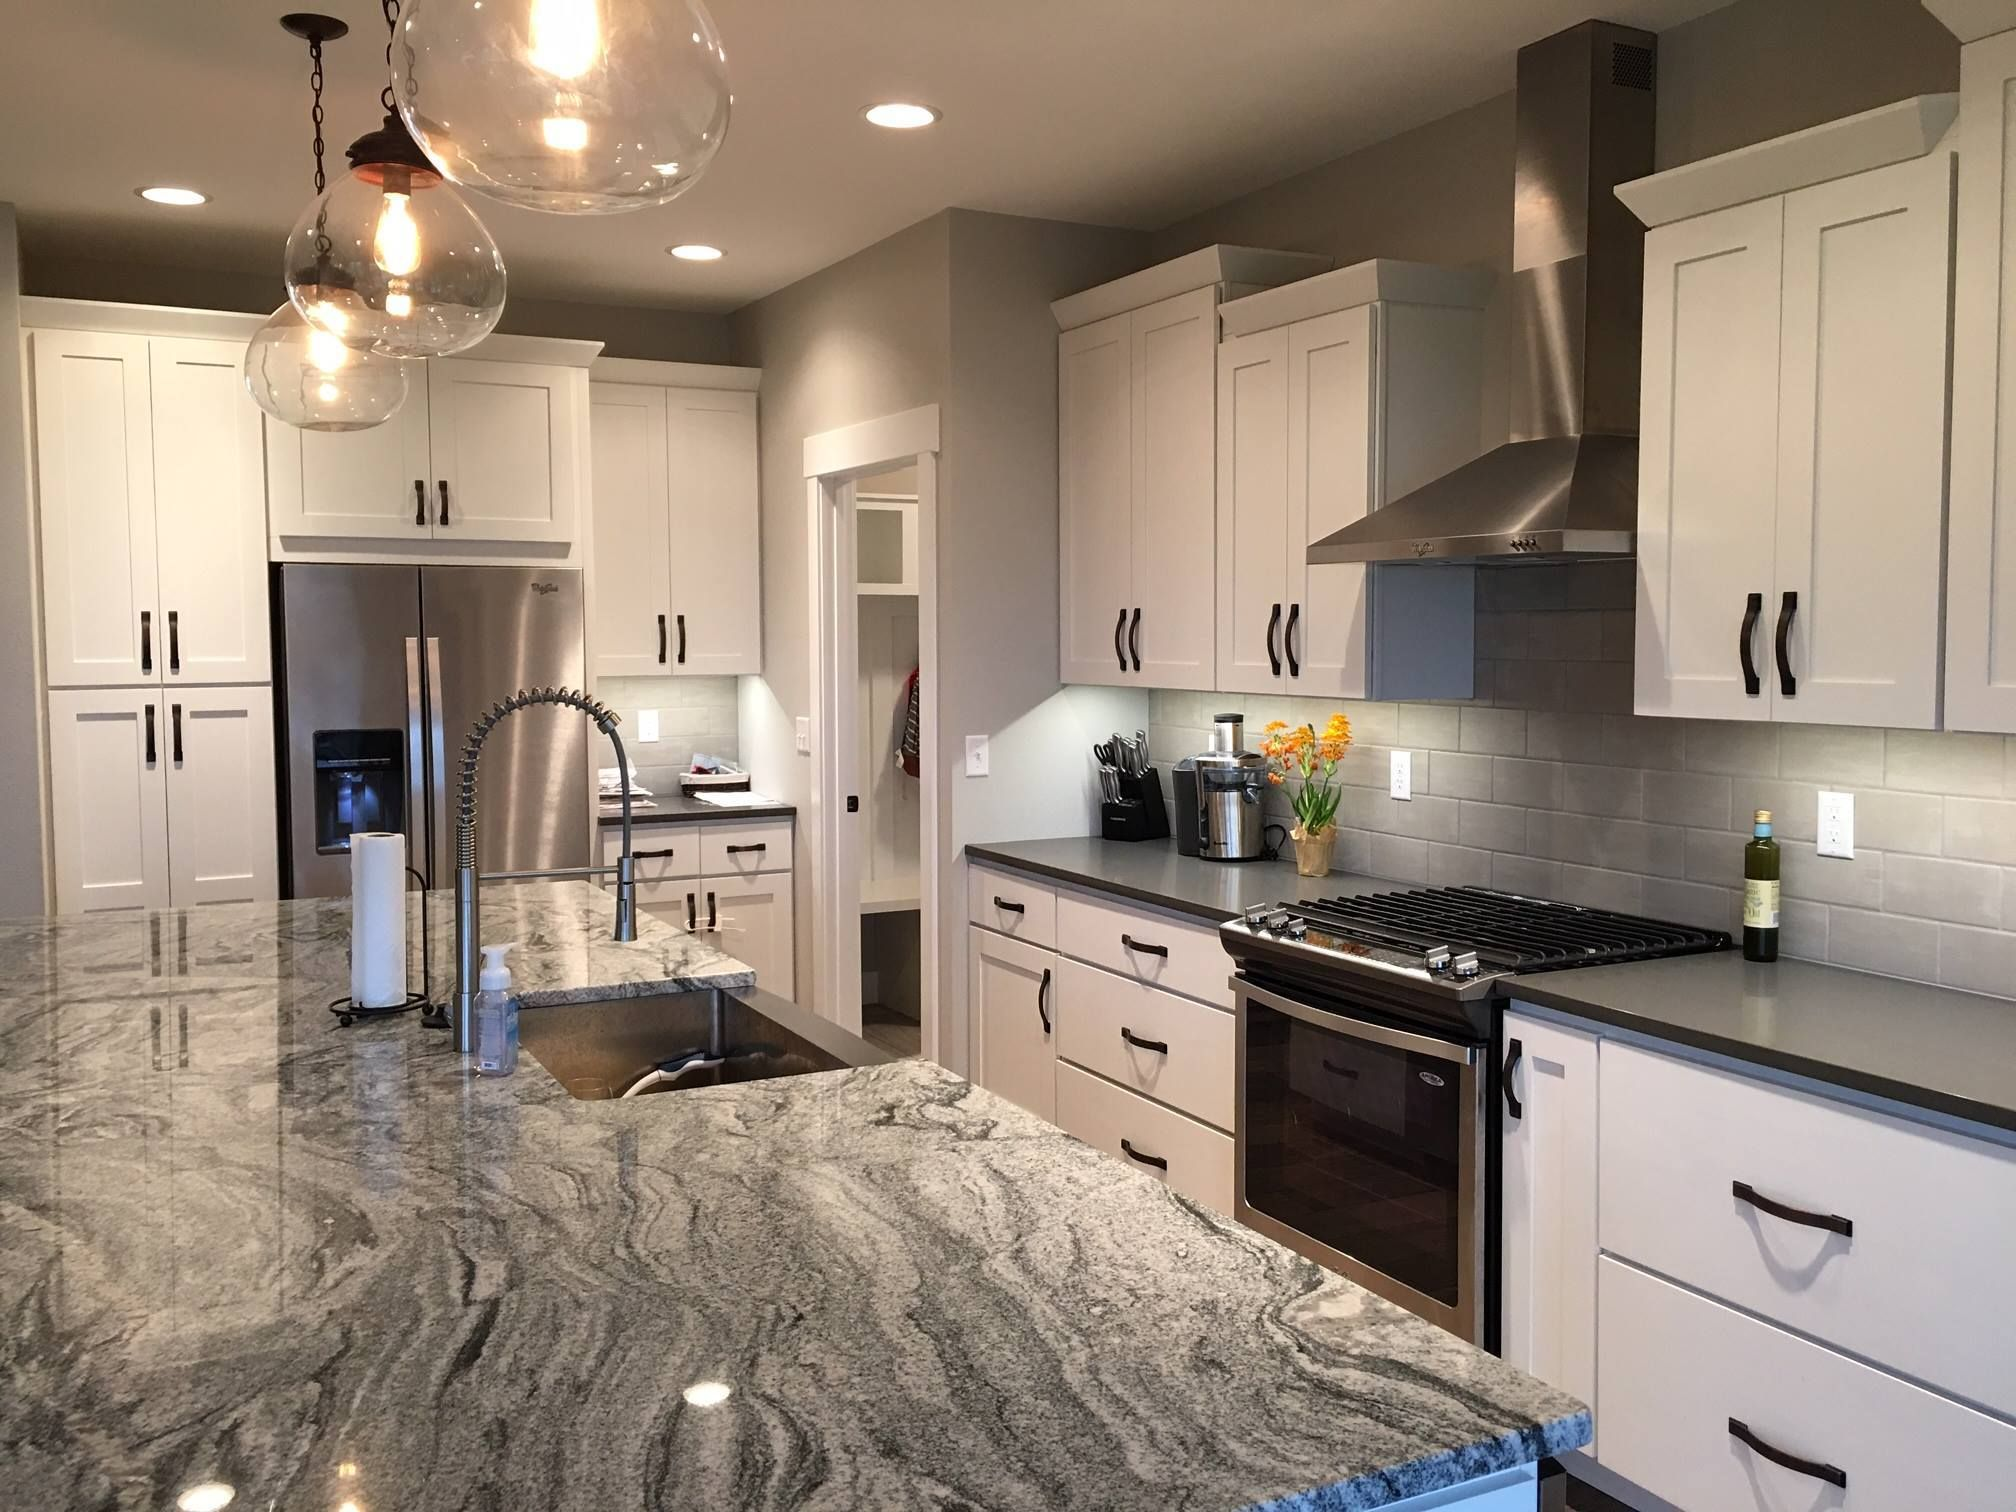 White Kitchen Cabinetry Bradford White Shaker Doors Learn More Builder Preferred Cabinetry Serving Wich Kitchen Bathroom Remodel Kitchen Kitchen Cabinetry